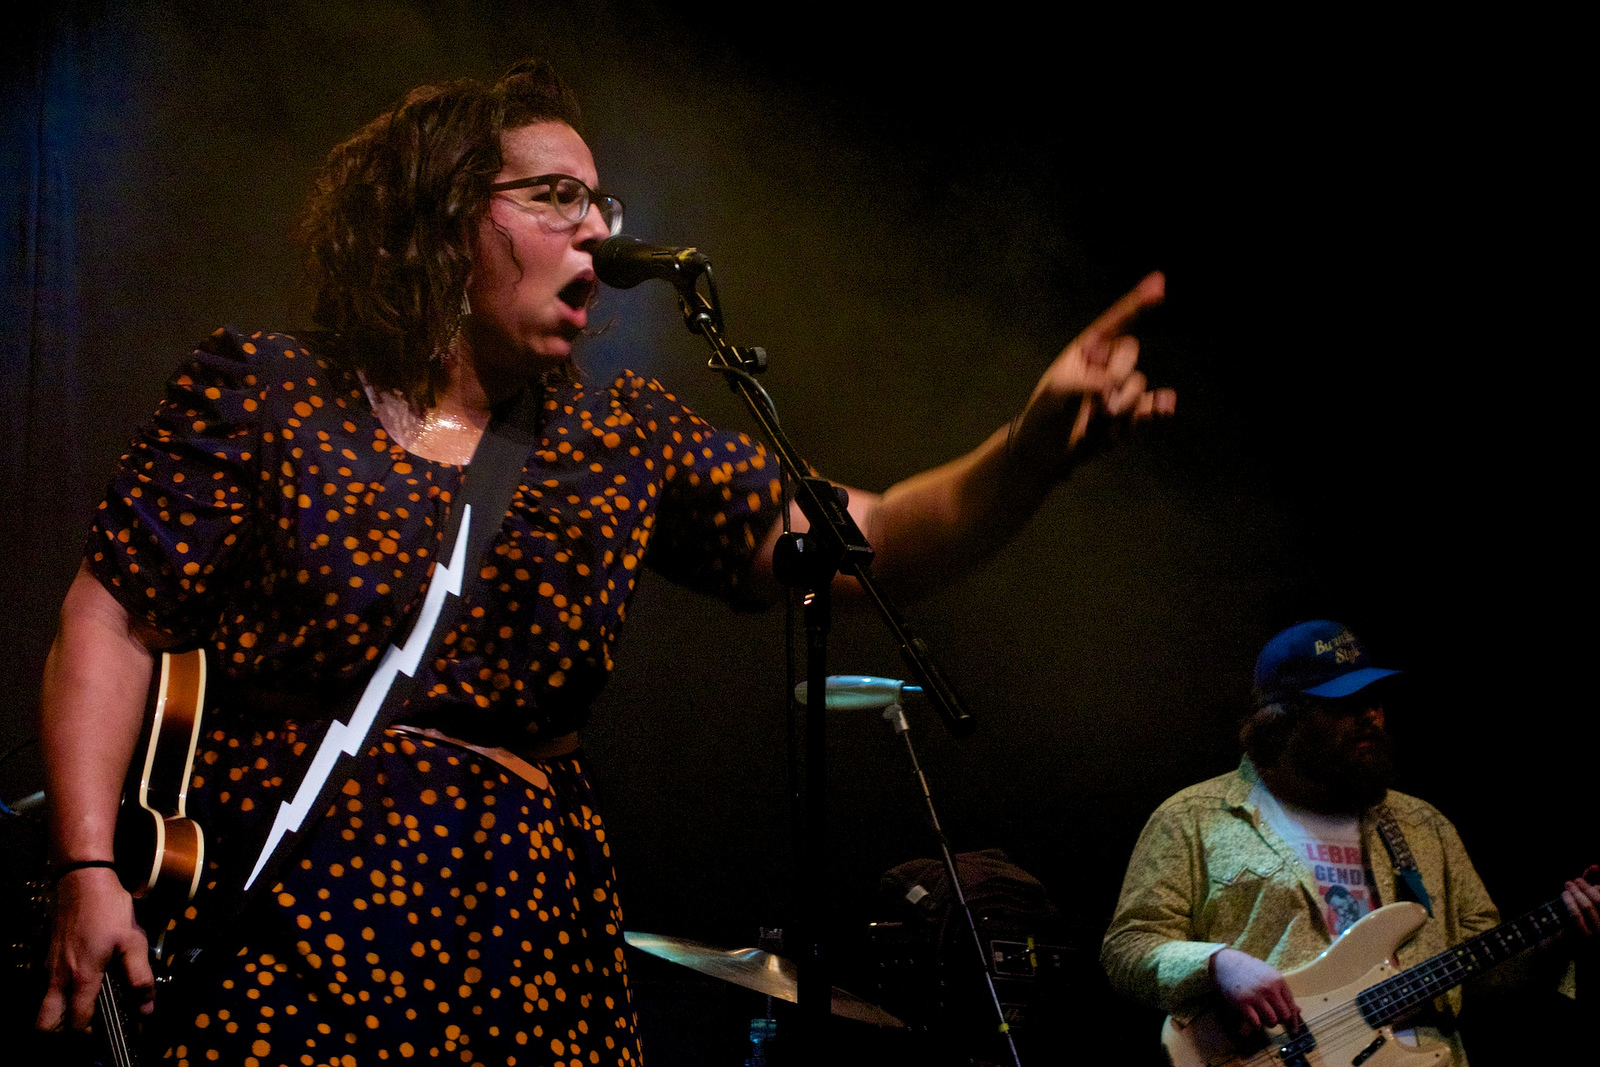 A woman with glasses and a blue and yellow dress sings loudly and gestures while holding a guitar.